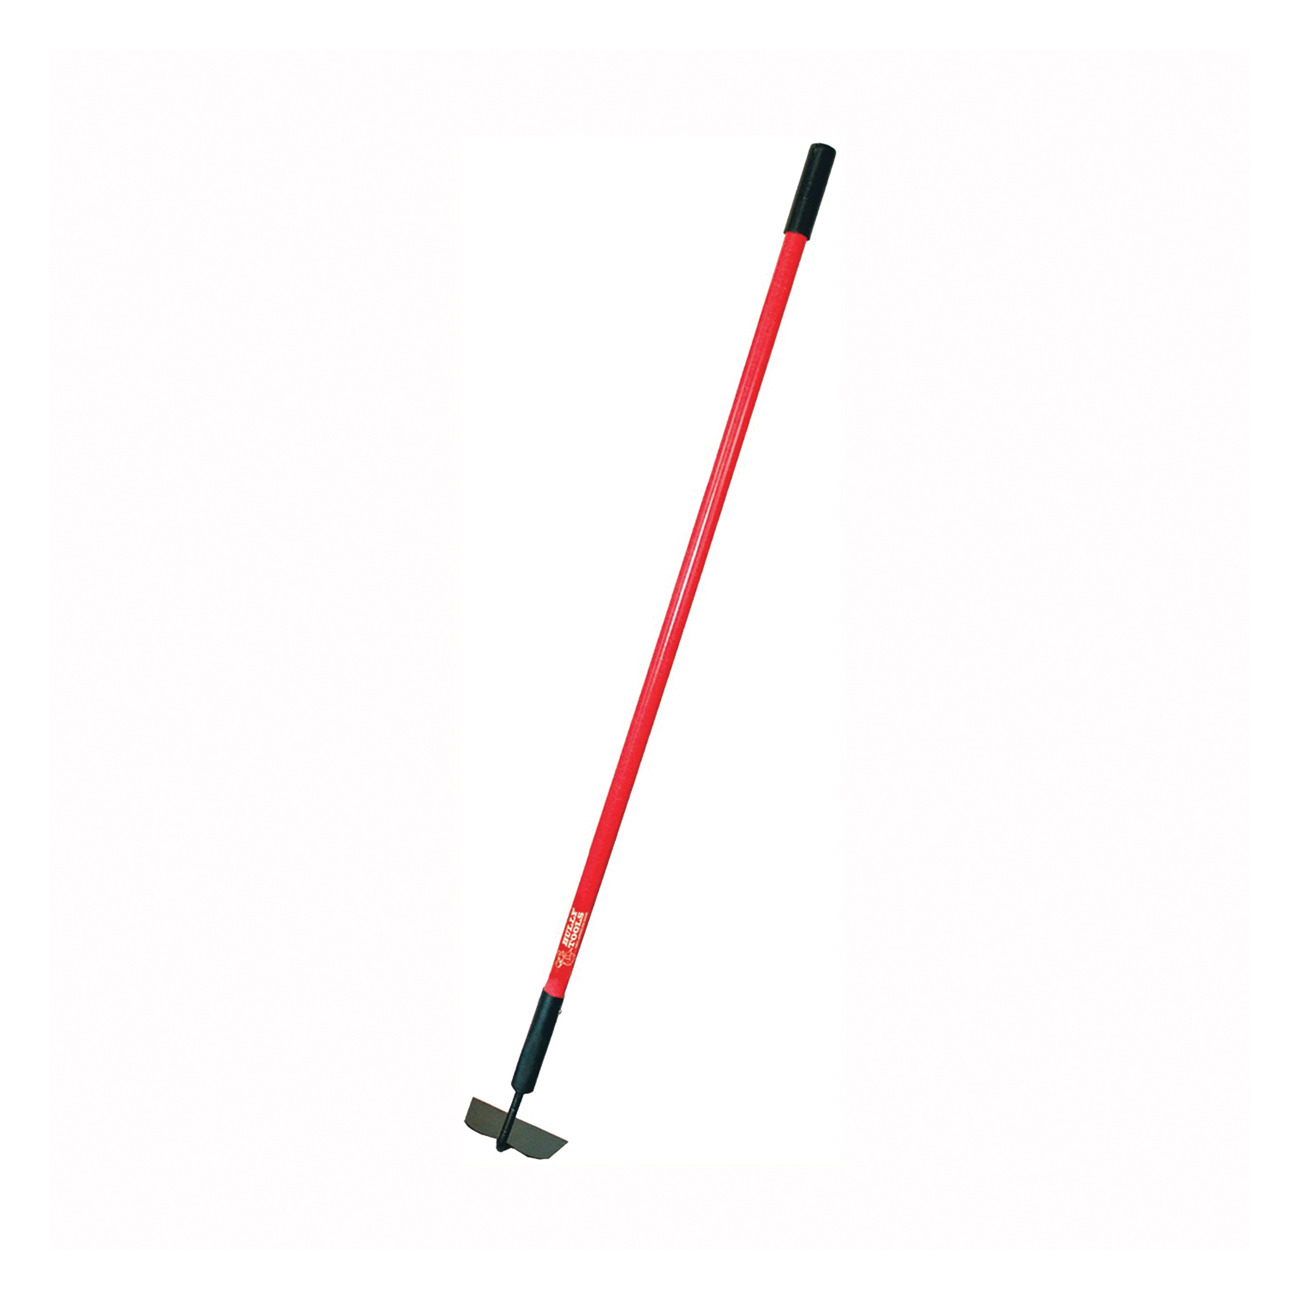 Picture of BULLY Tools 92353 Garden Hoe, 6-1/2 in W Blade, 4-3/4 in L Blade, Steel Blade, Extra Thick Blade, Fiberglass Handle